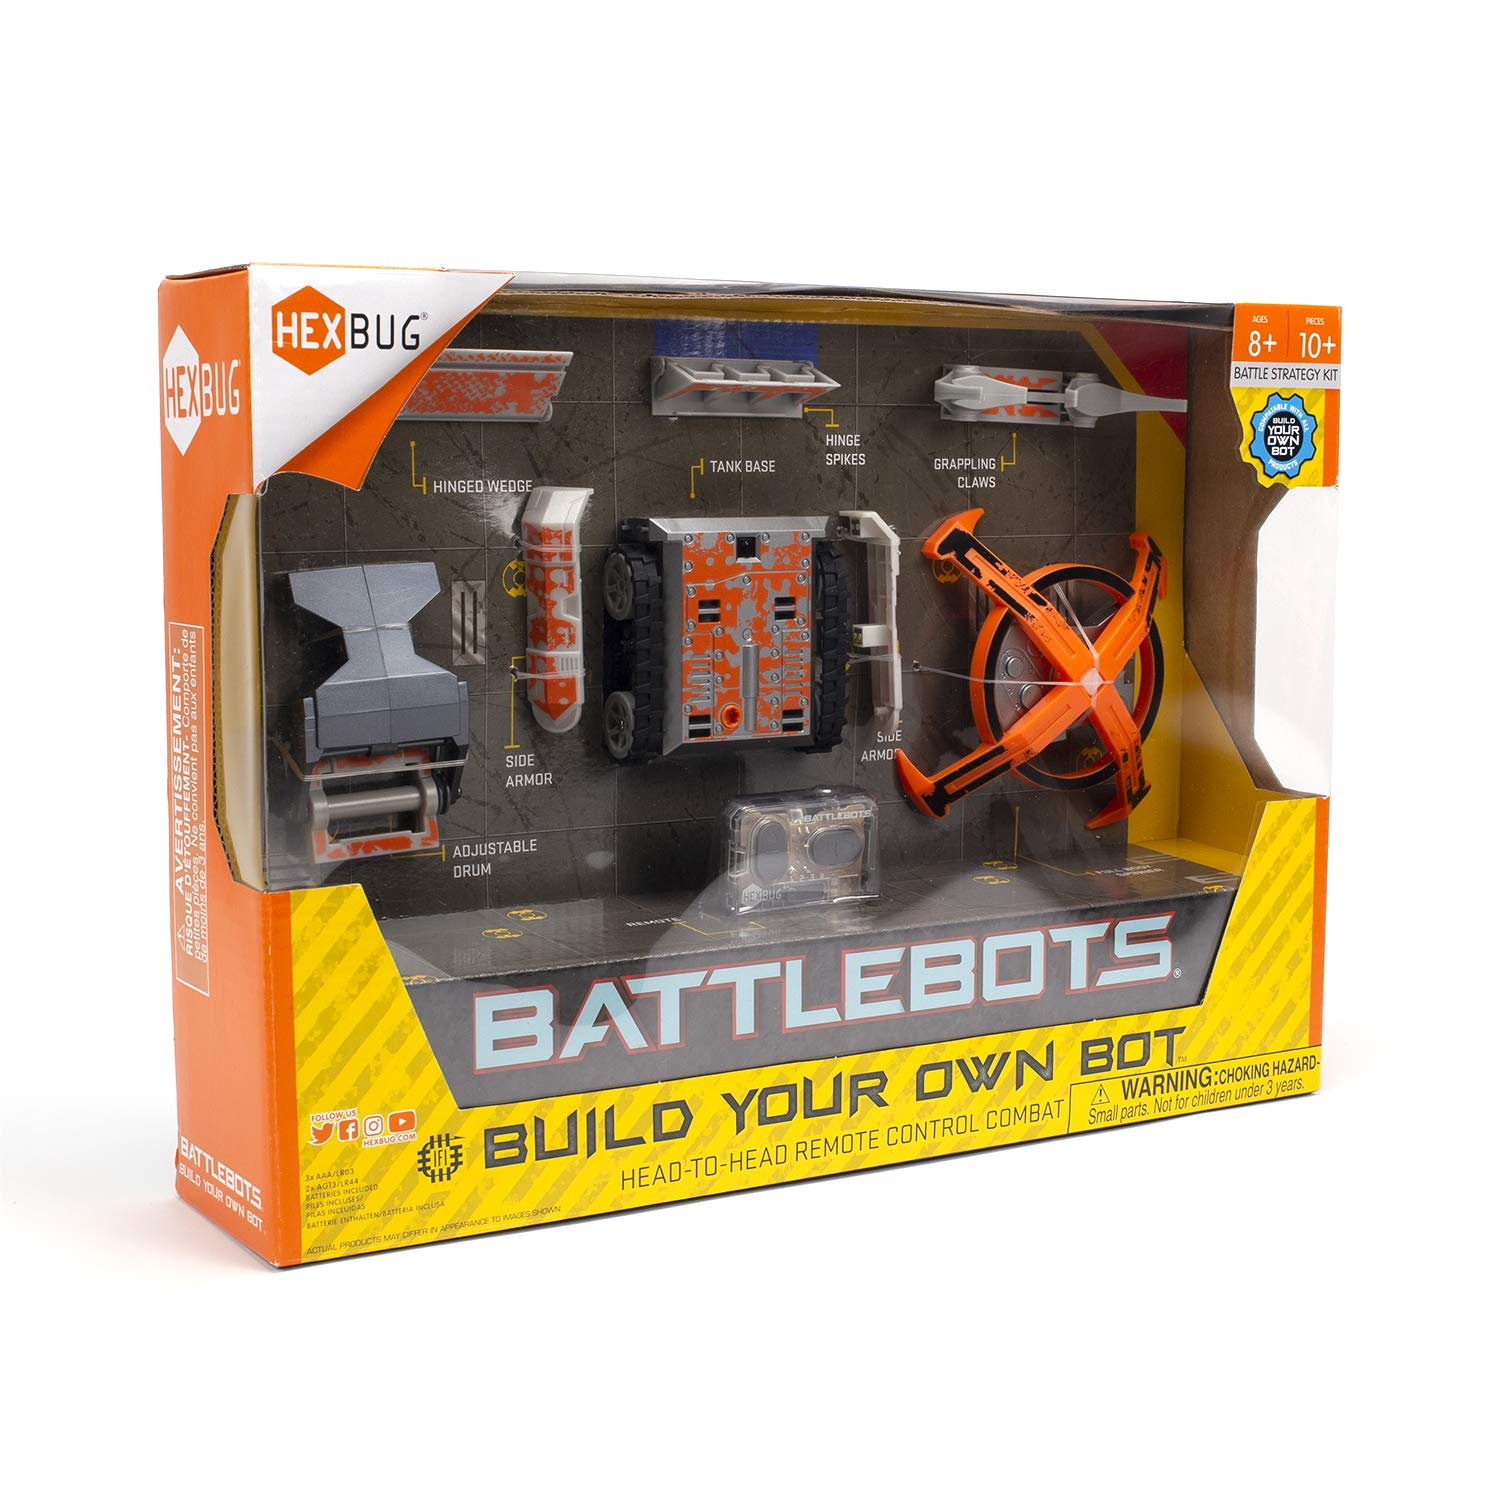 HEXBUG BattleBots Build Your Own Bot Tank Drive, Toys for Kids, Fun Battle Bot Hex Bugs by HEXBUG (Image #4)